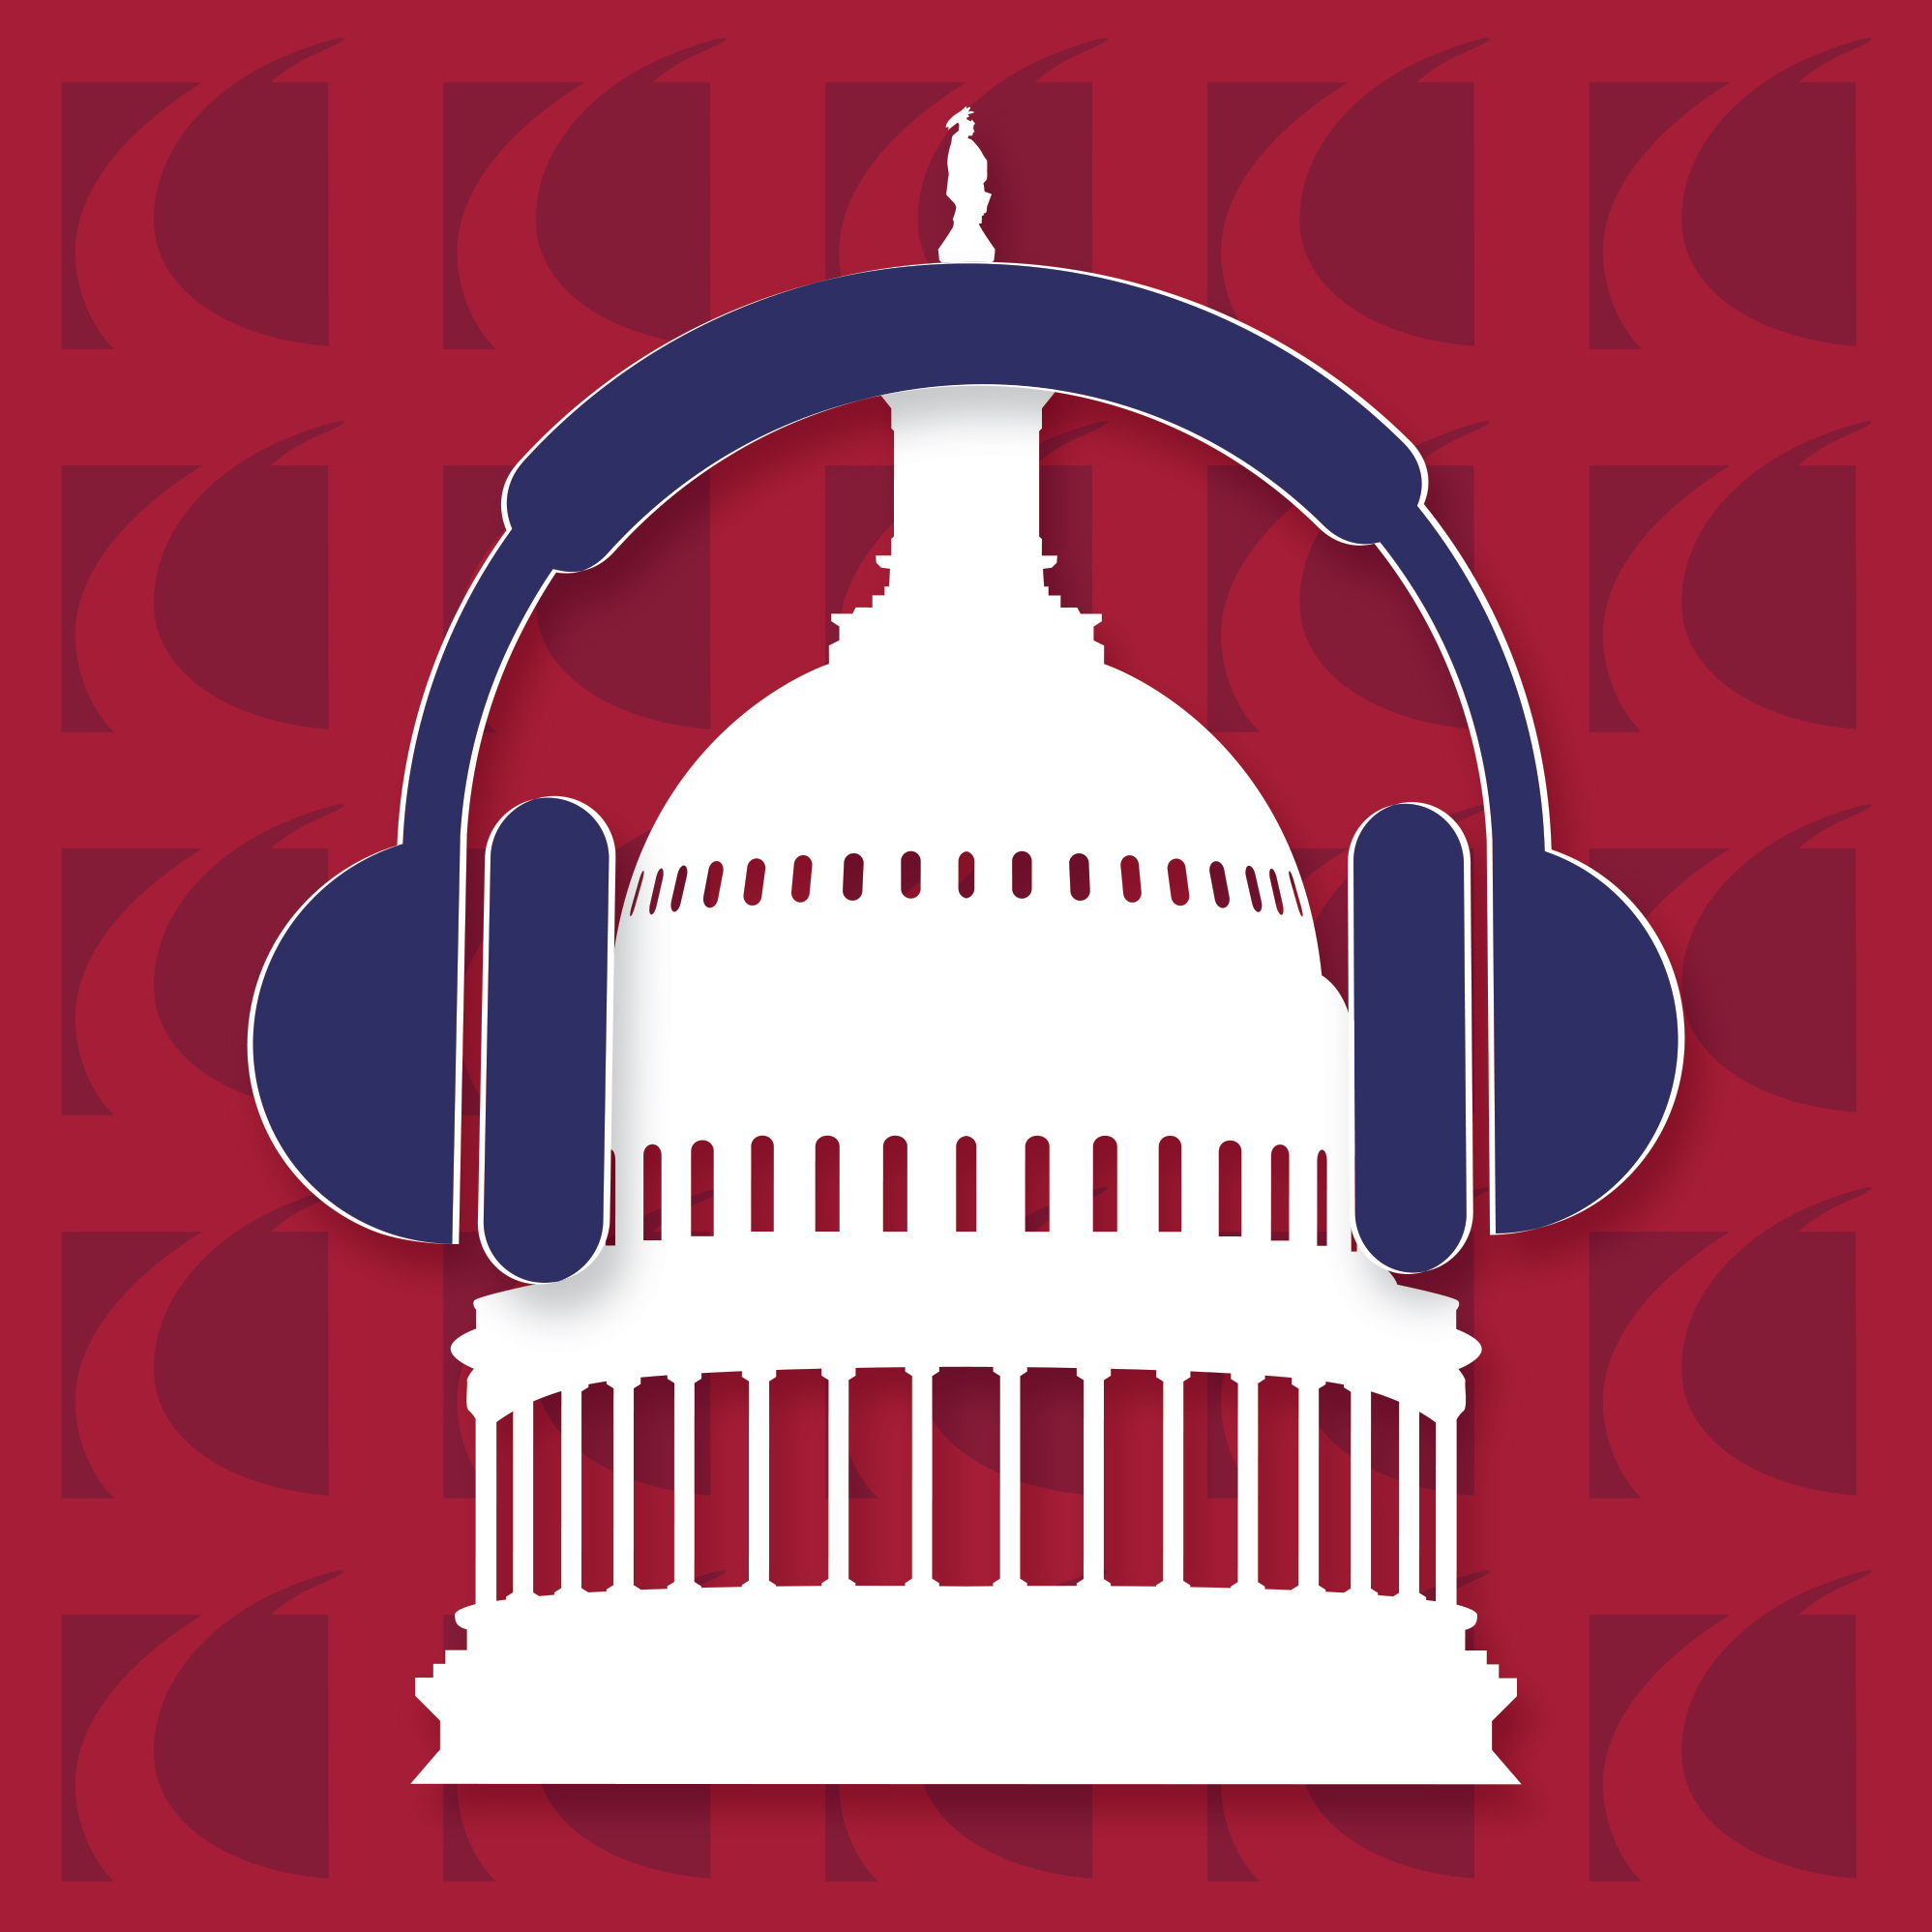 June 22: Fastest 5 Minutes, The Podcast Gov't Contractors Can't Do Without - Crowell & Moring LLP